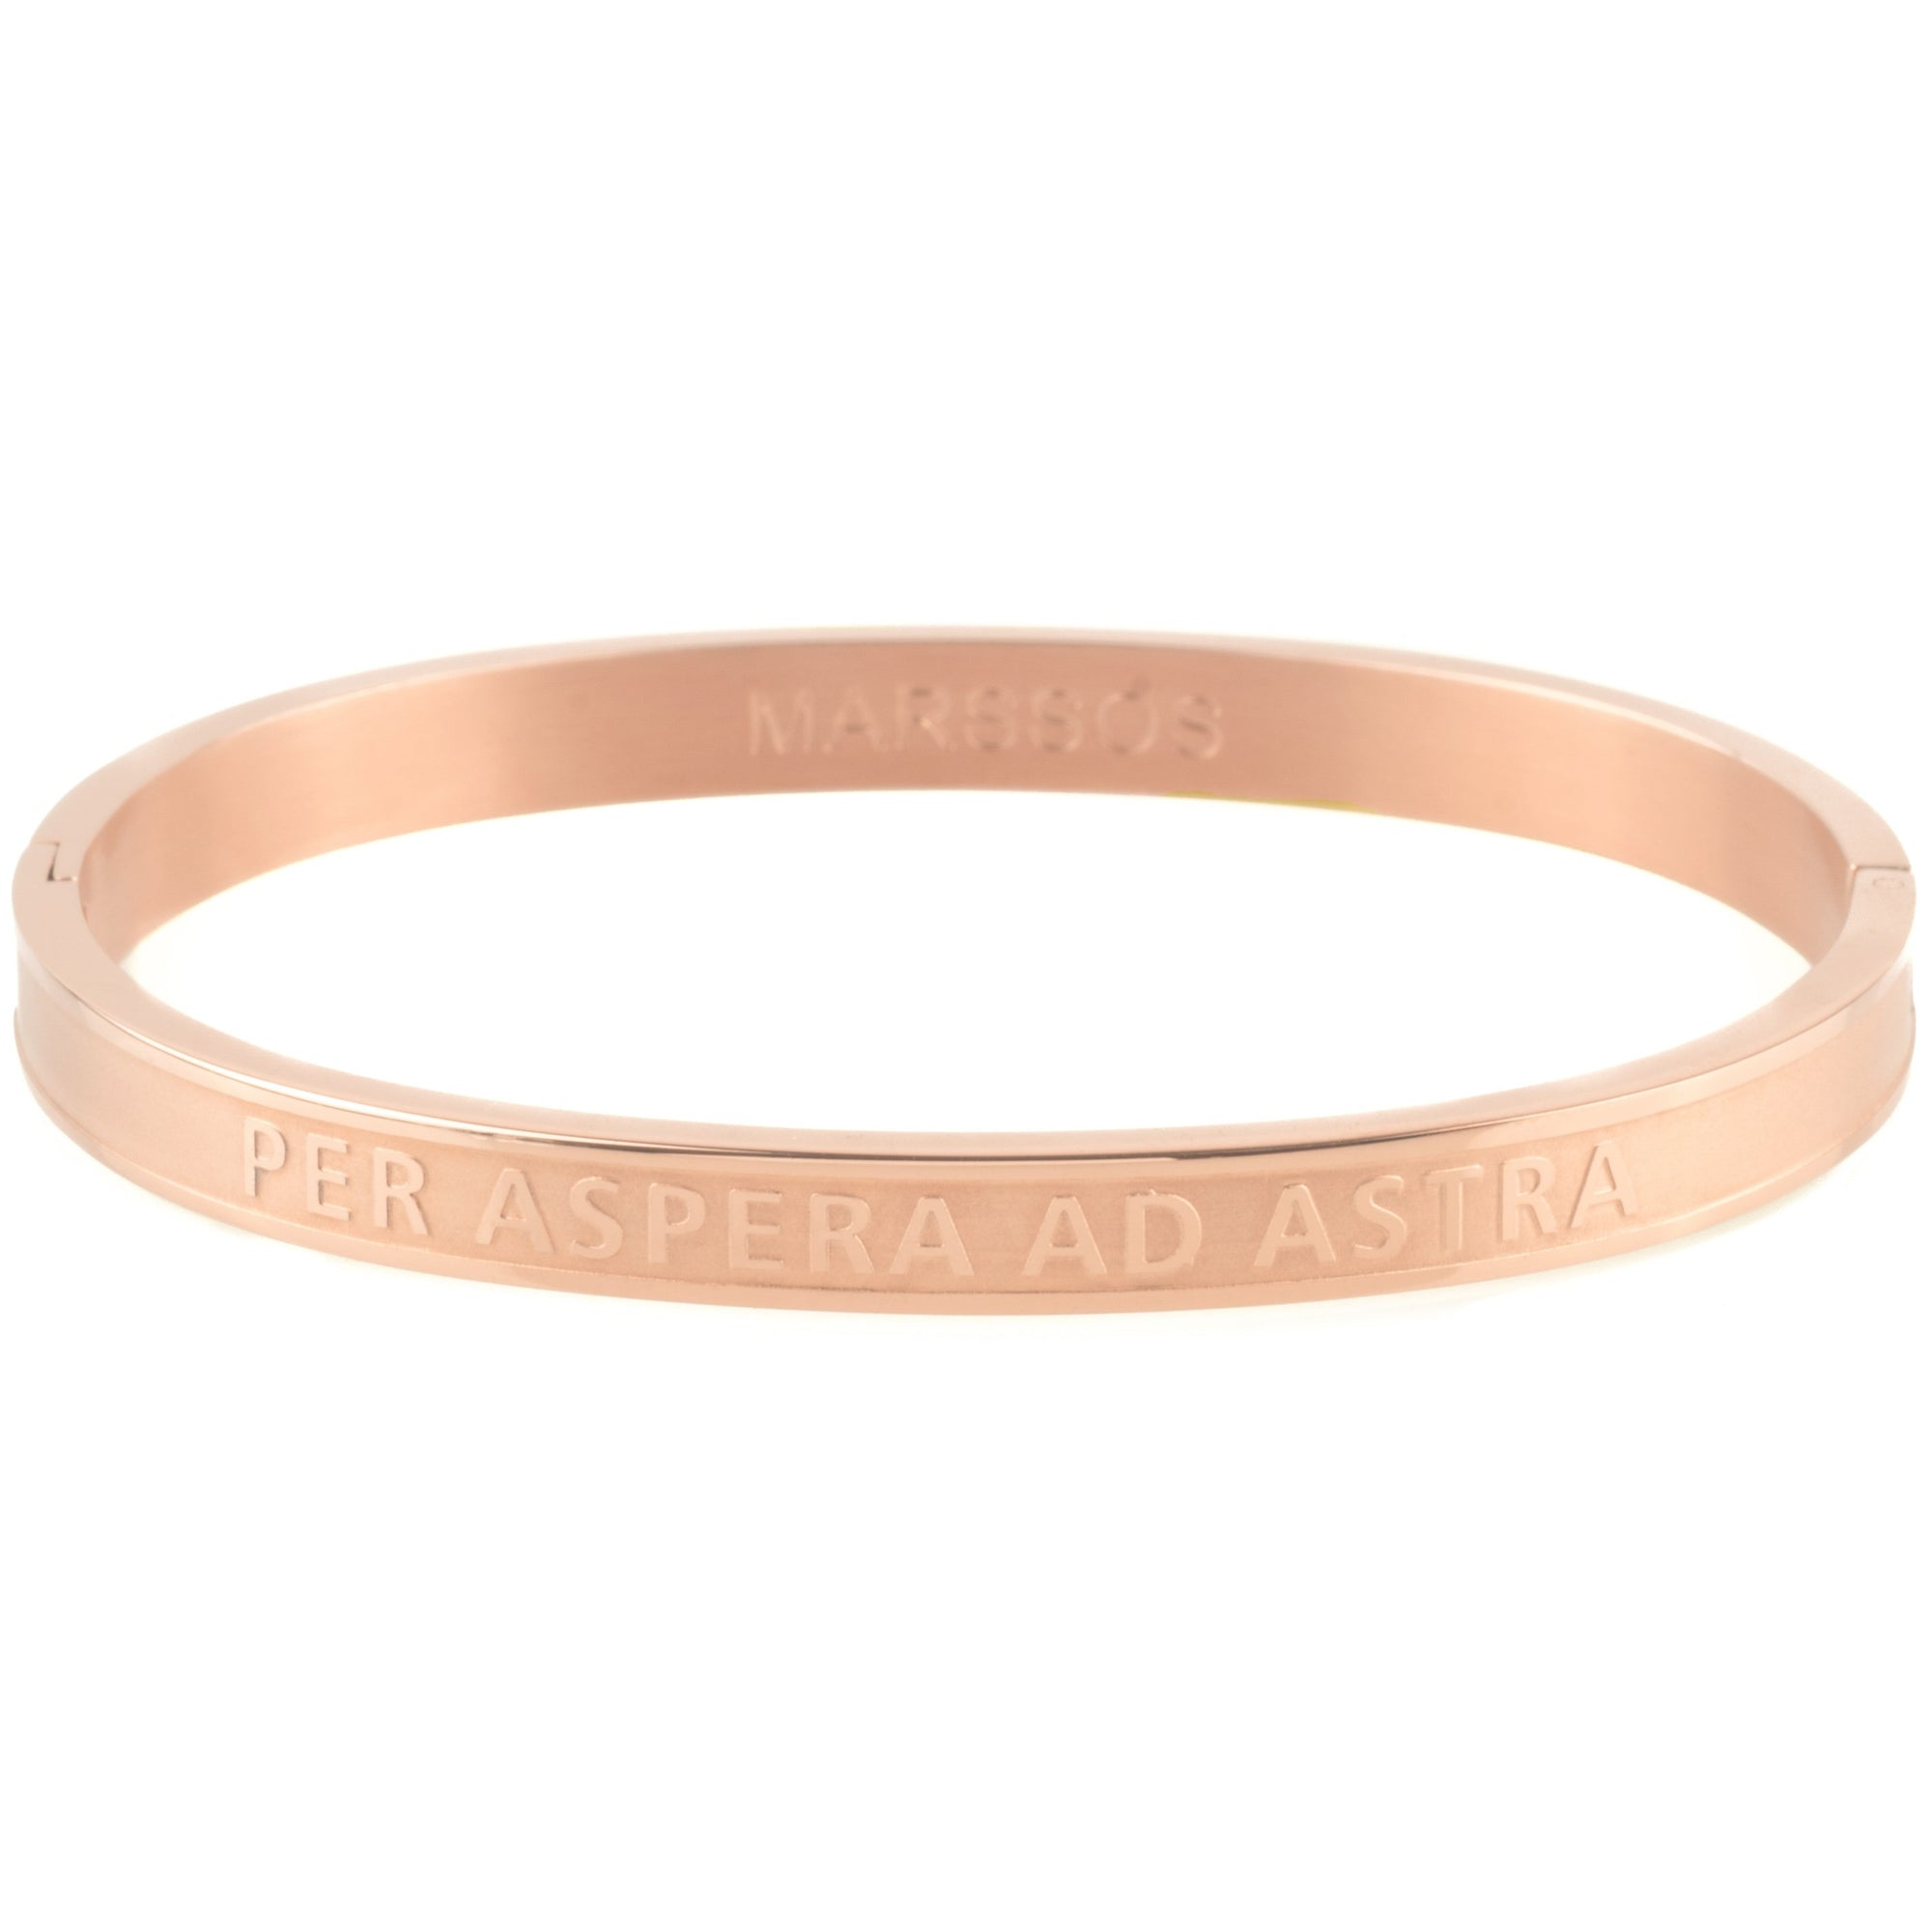 The Perseverance Bracelet - Rose Gold - Marssos